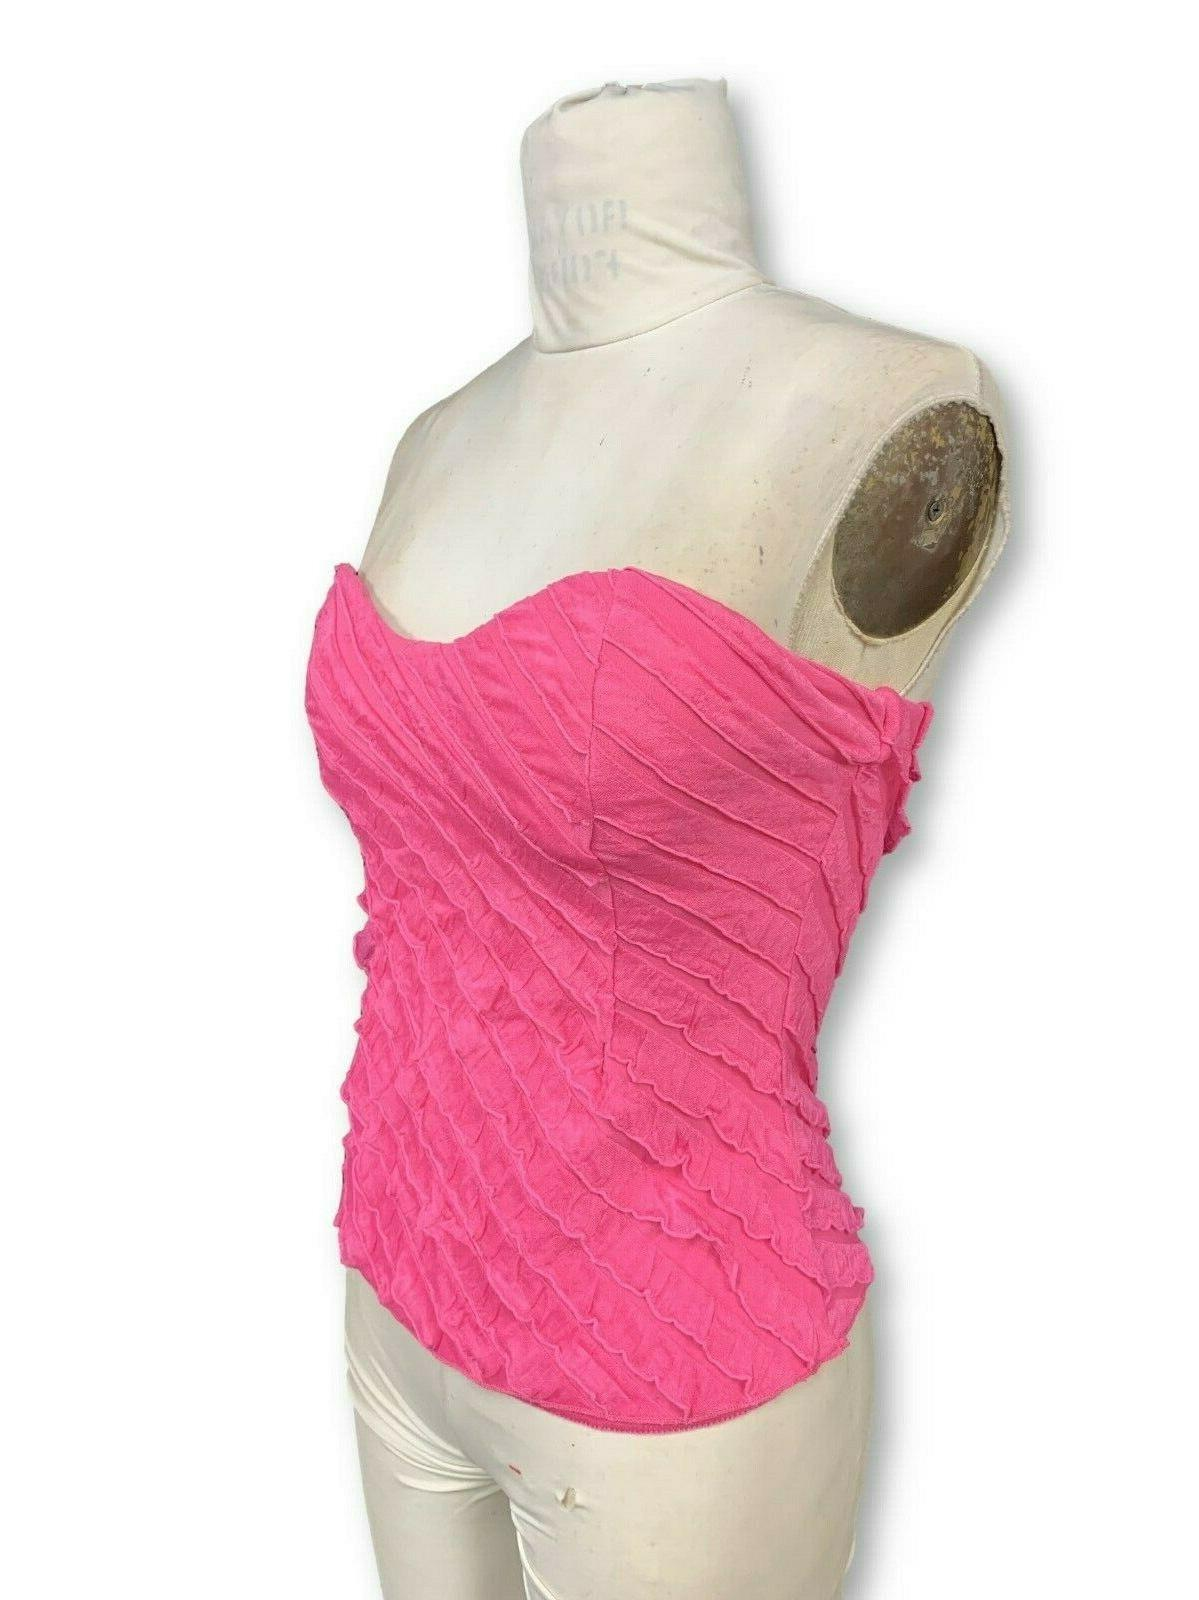 Womens Pink Strapless Top With Bra - S-XL